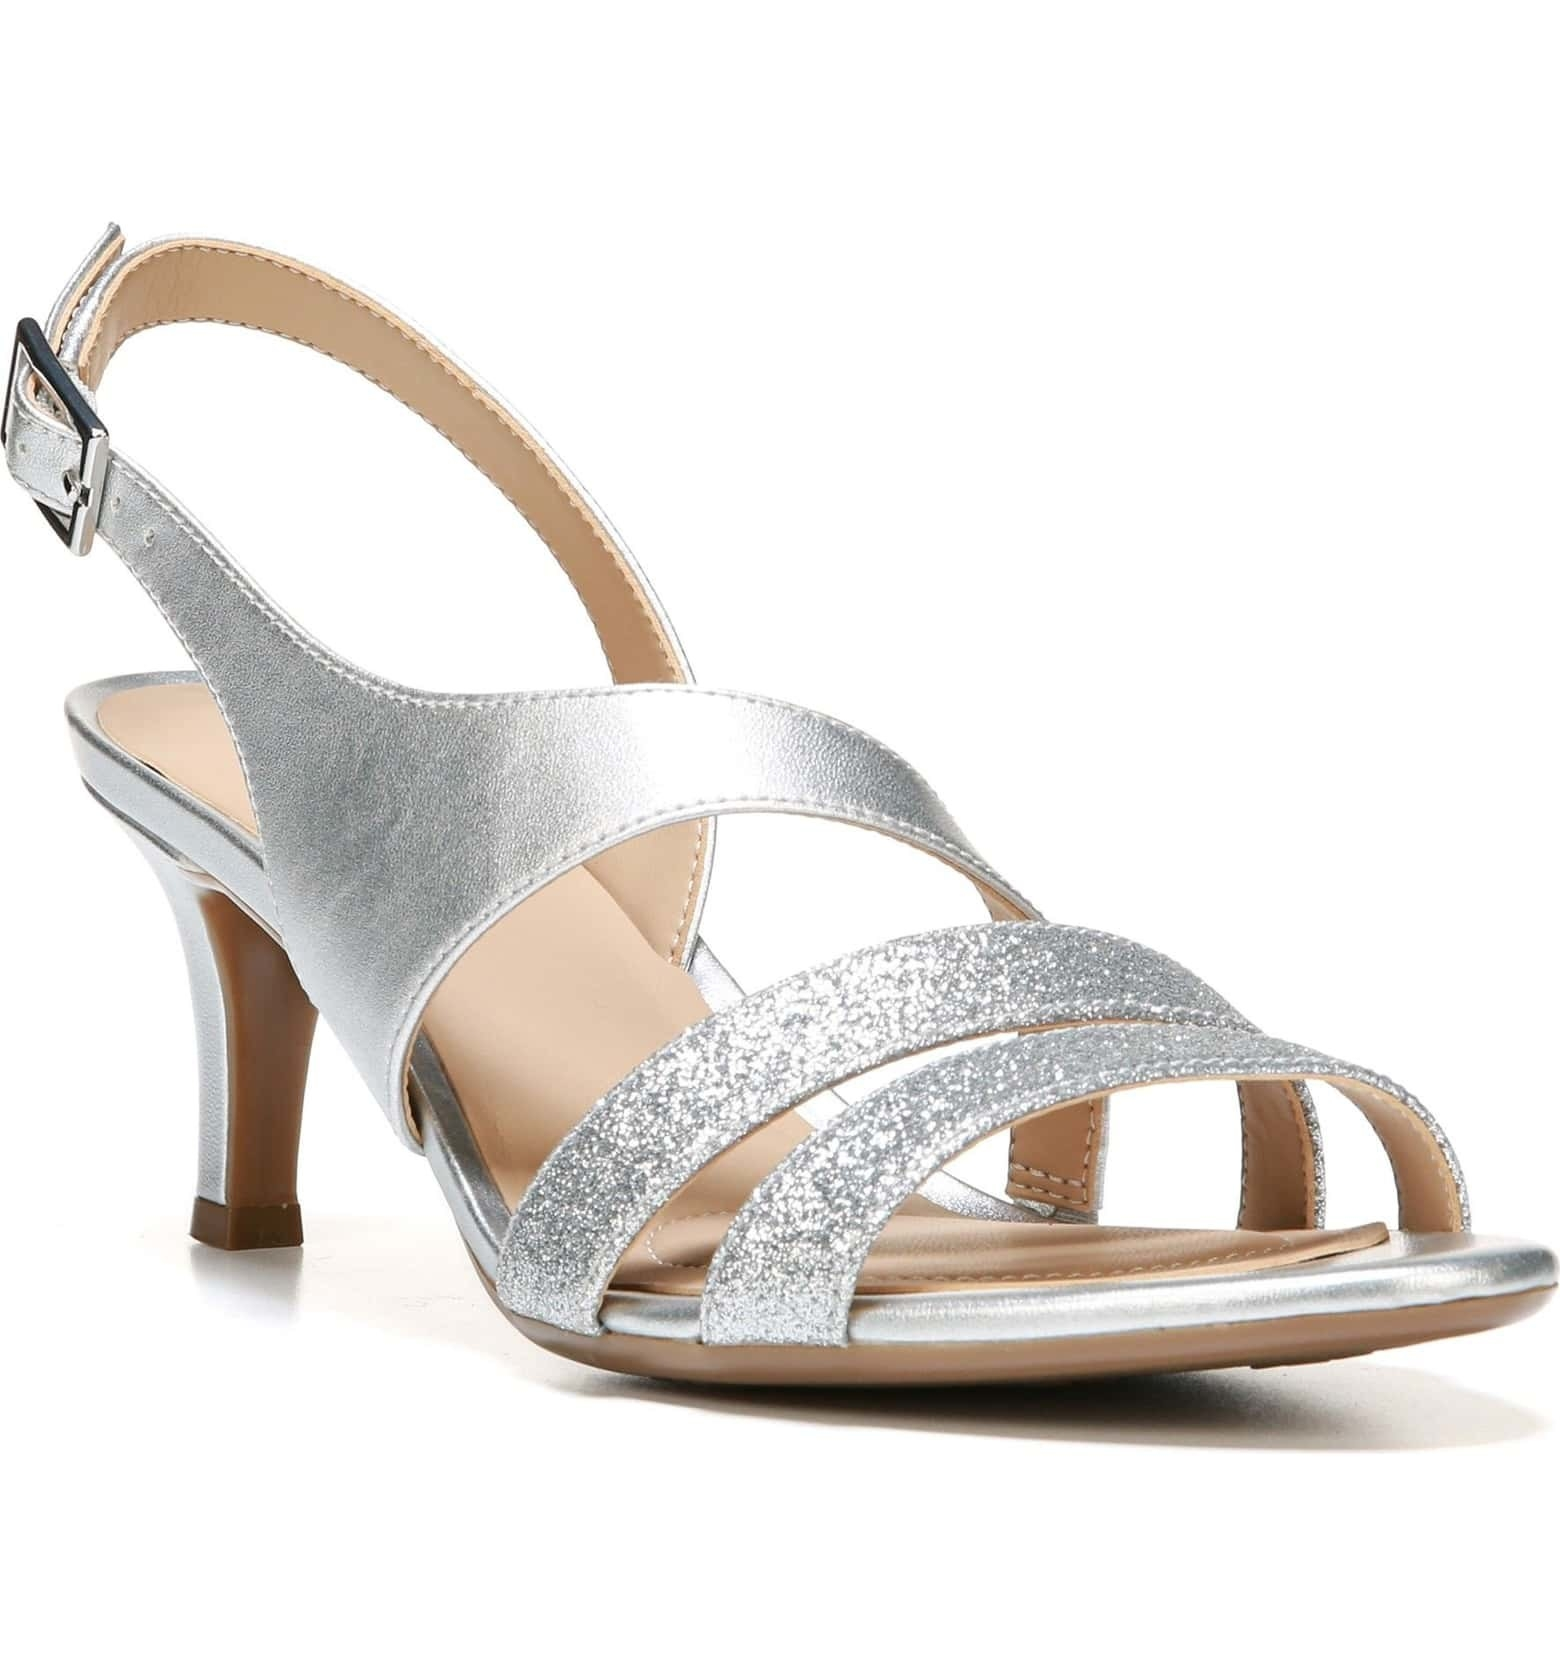 fc2aba73f33b Low-heeled (2.5-inch) strappy sandals that come in three widths and are  every bit as elegant as the sky-high options.